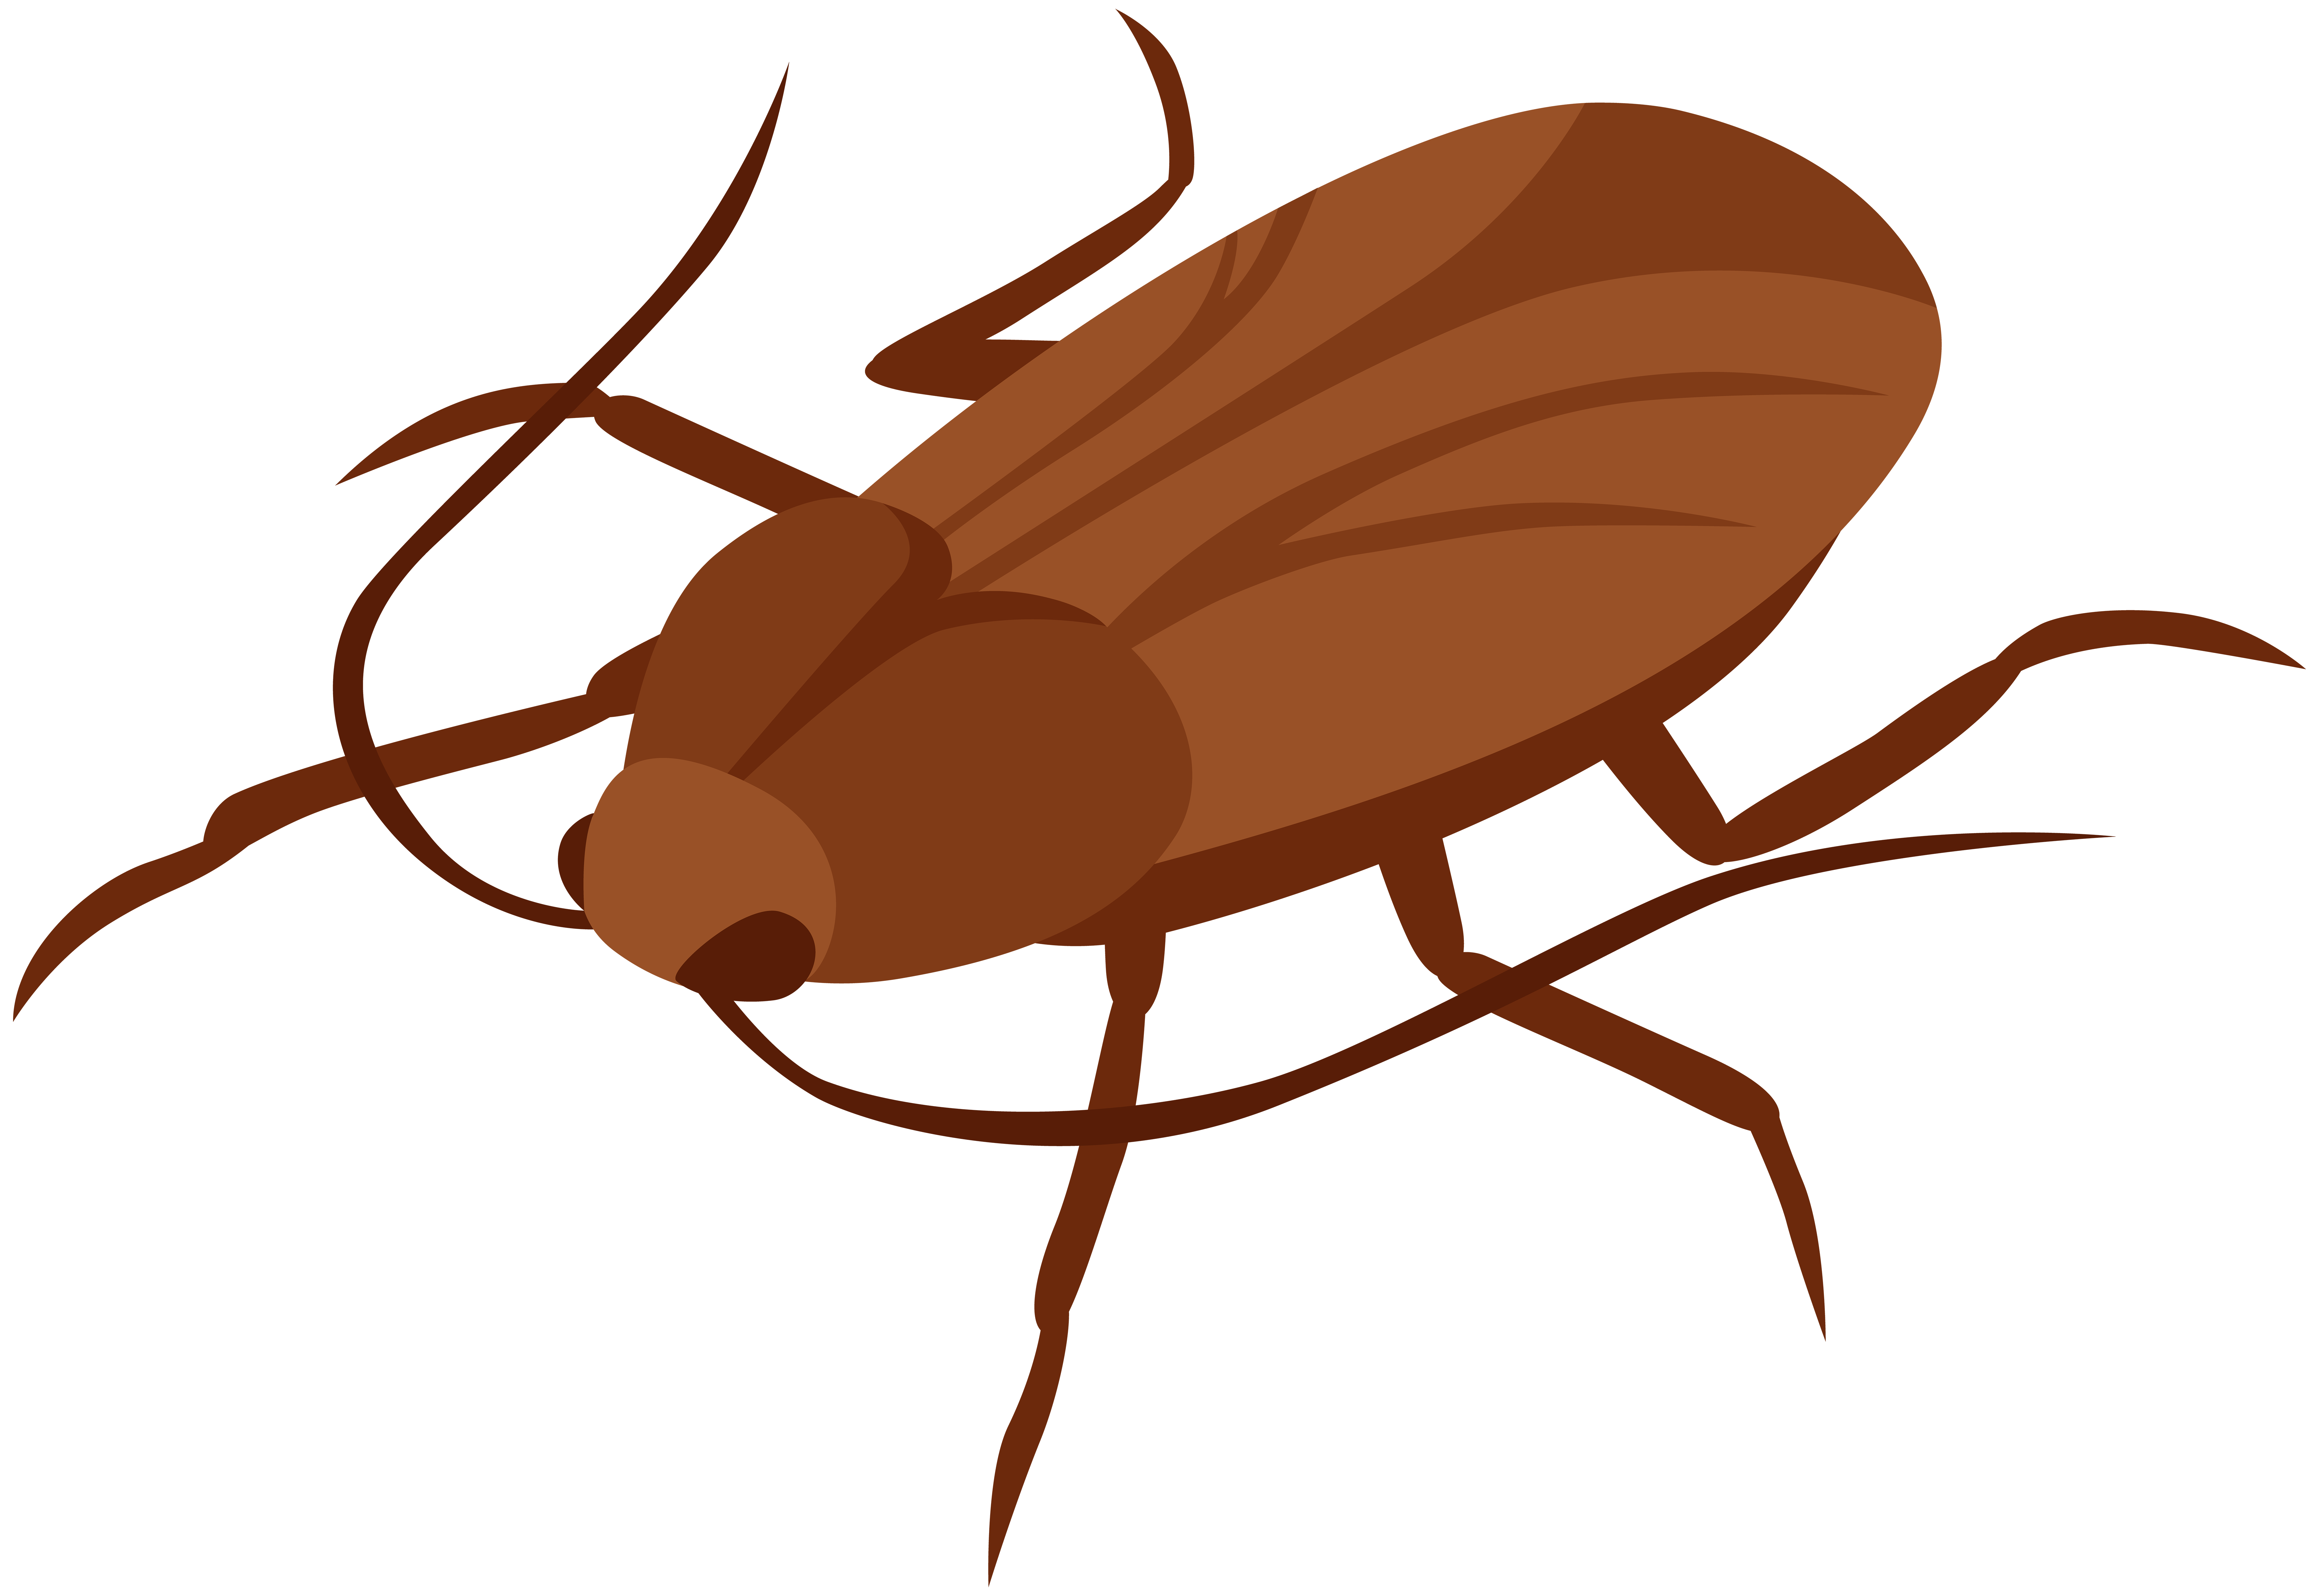 Cucaracha. Cockroach images clipart gallery